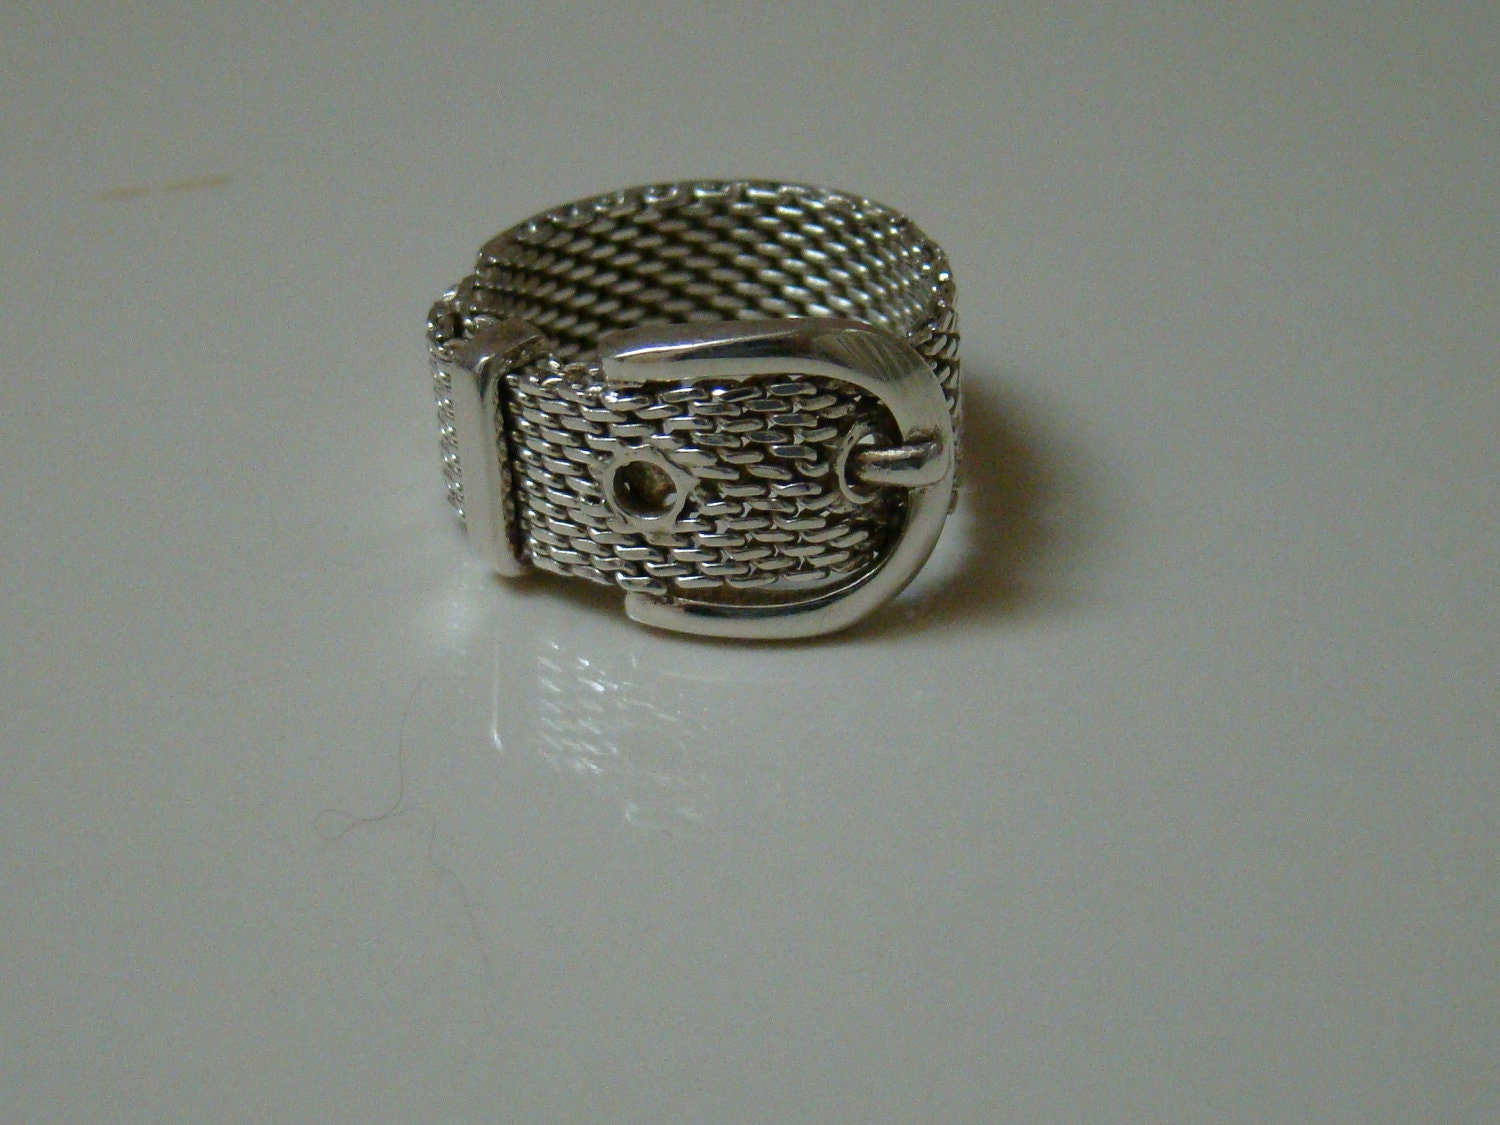 mesh belt buckle ring sterling silver 925 size 7